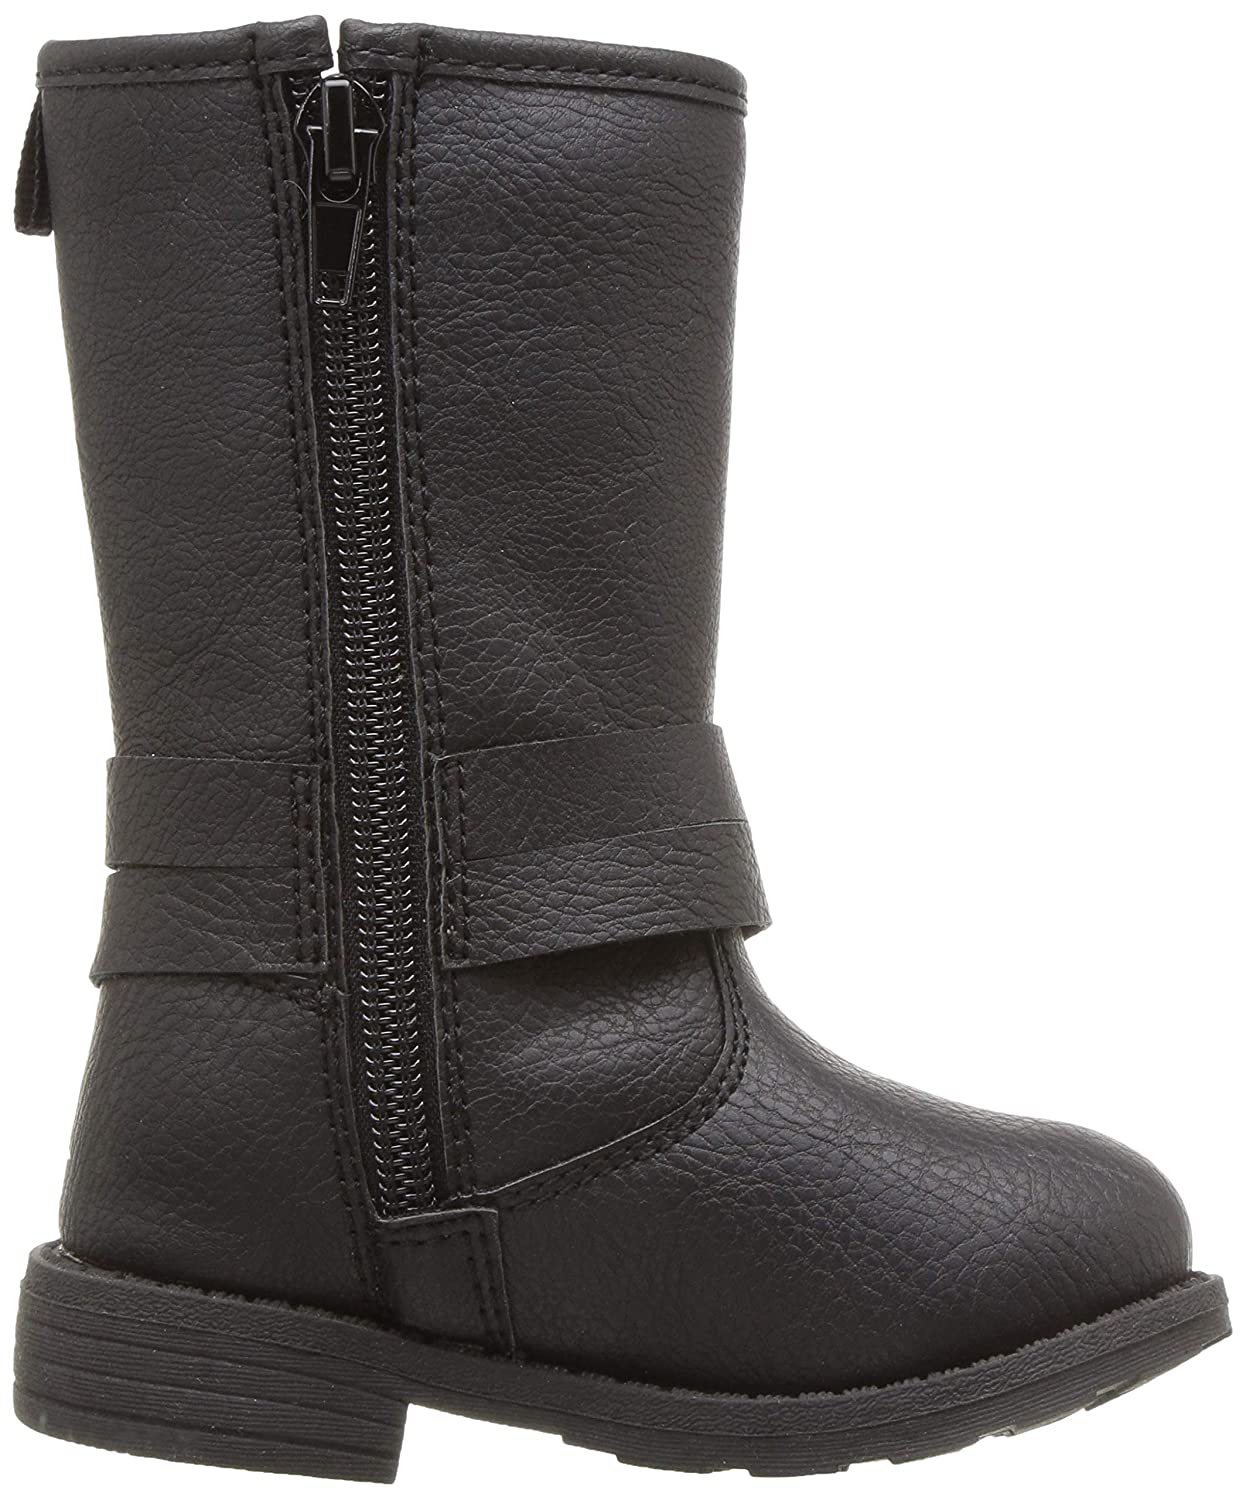 Carters Kids Girls Cicily Black Riding Boot Fashion Carter/'s CF180631